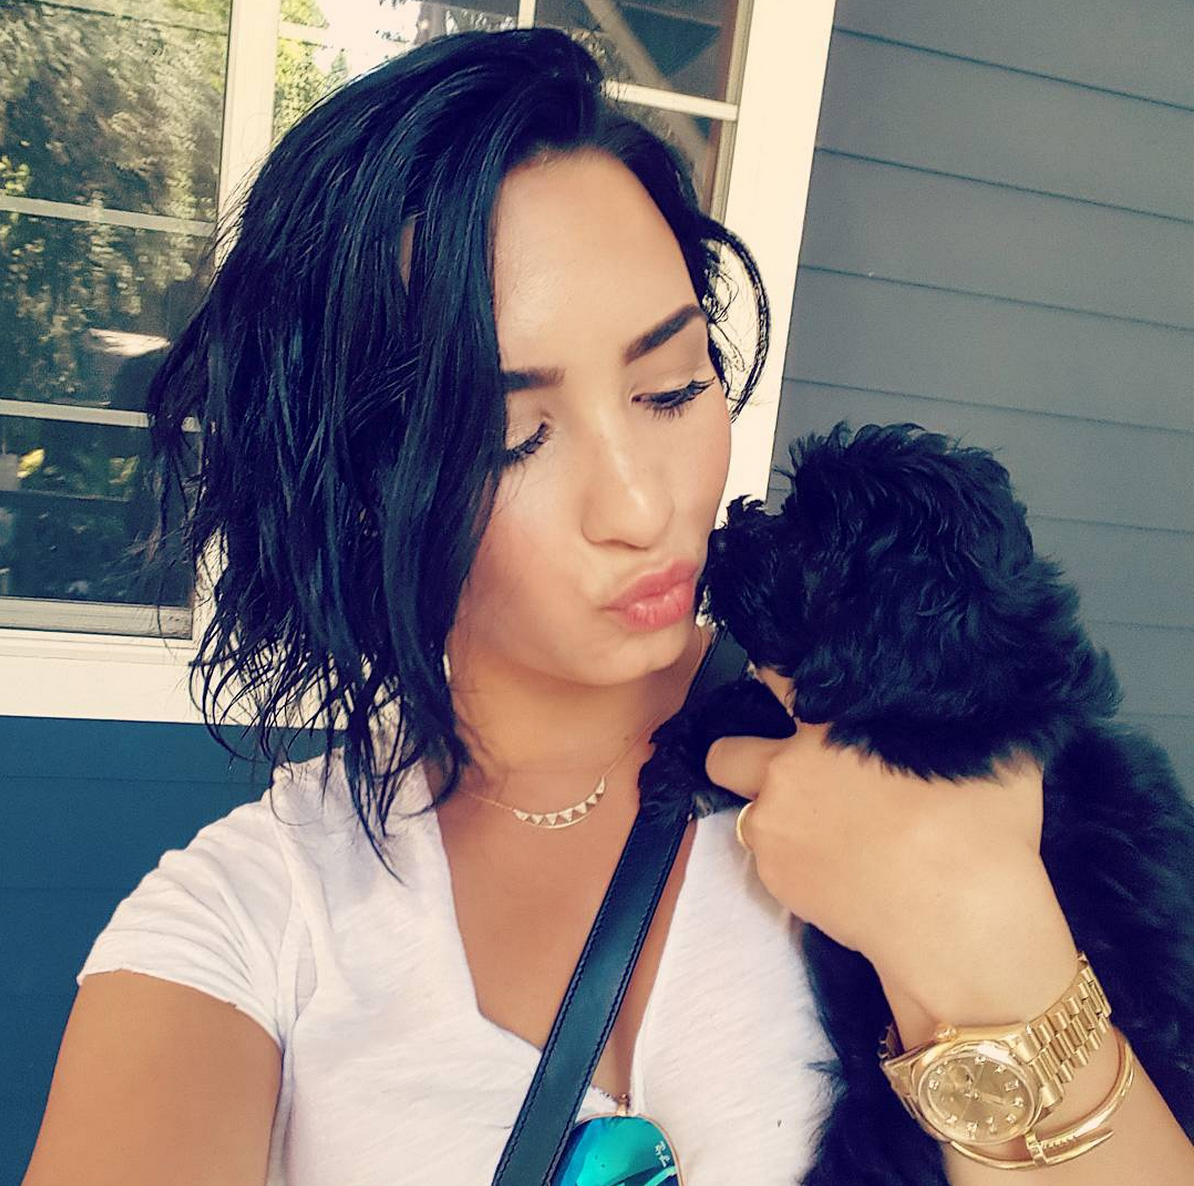 Demi Lovato posts a picture to Instagram of her and a puppy